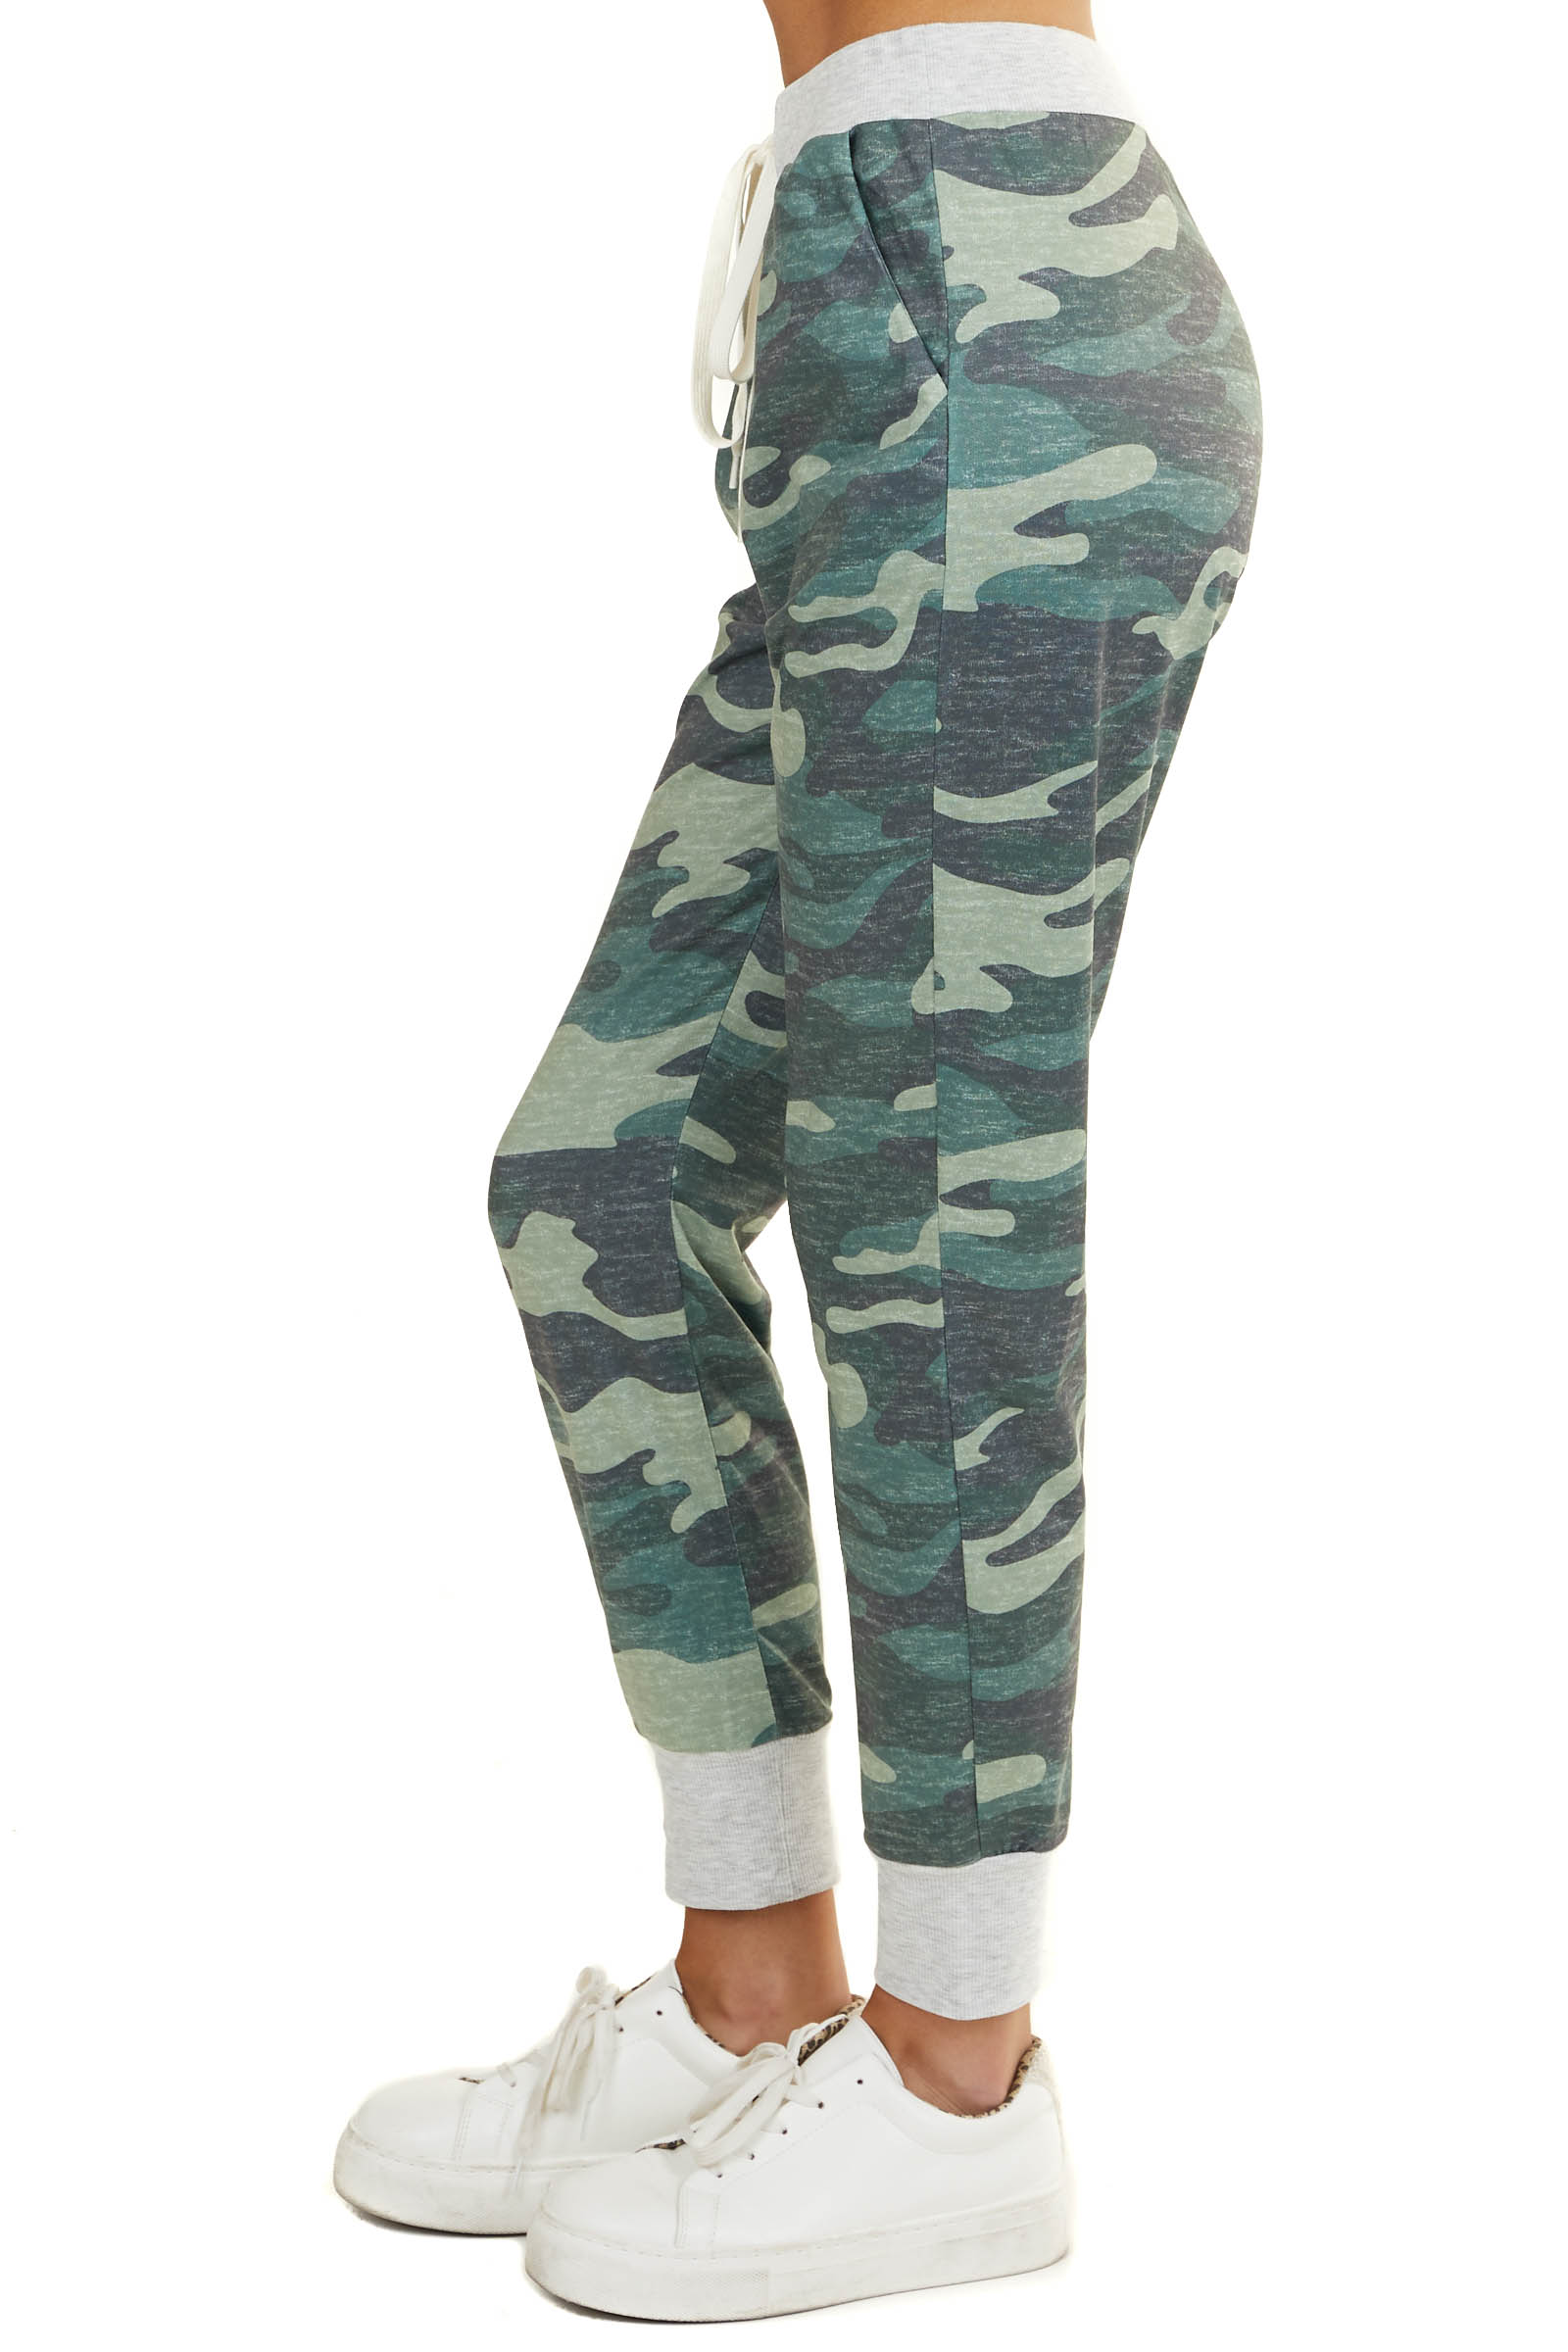 Forest Green Camo Print Joggers with Drawstrings and Pockets